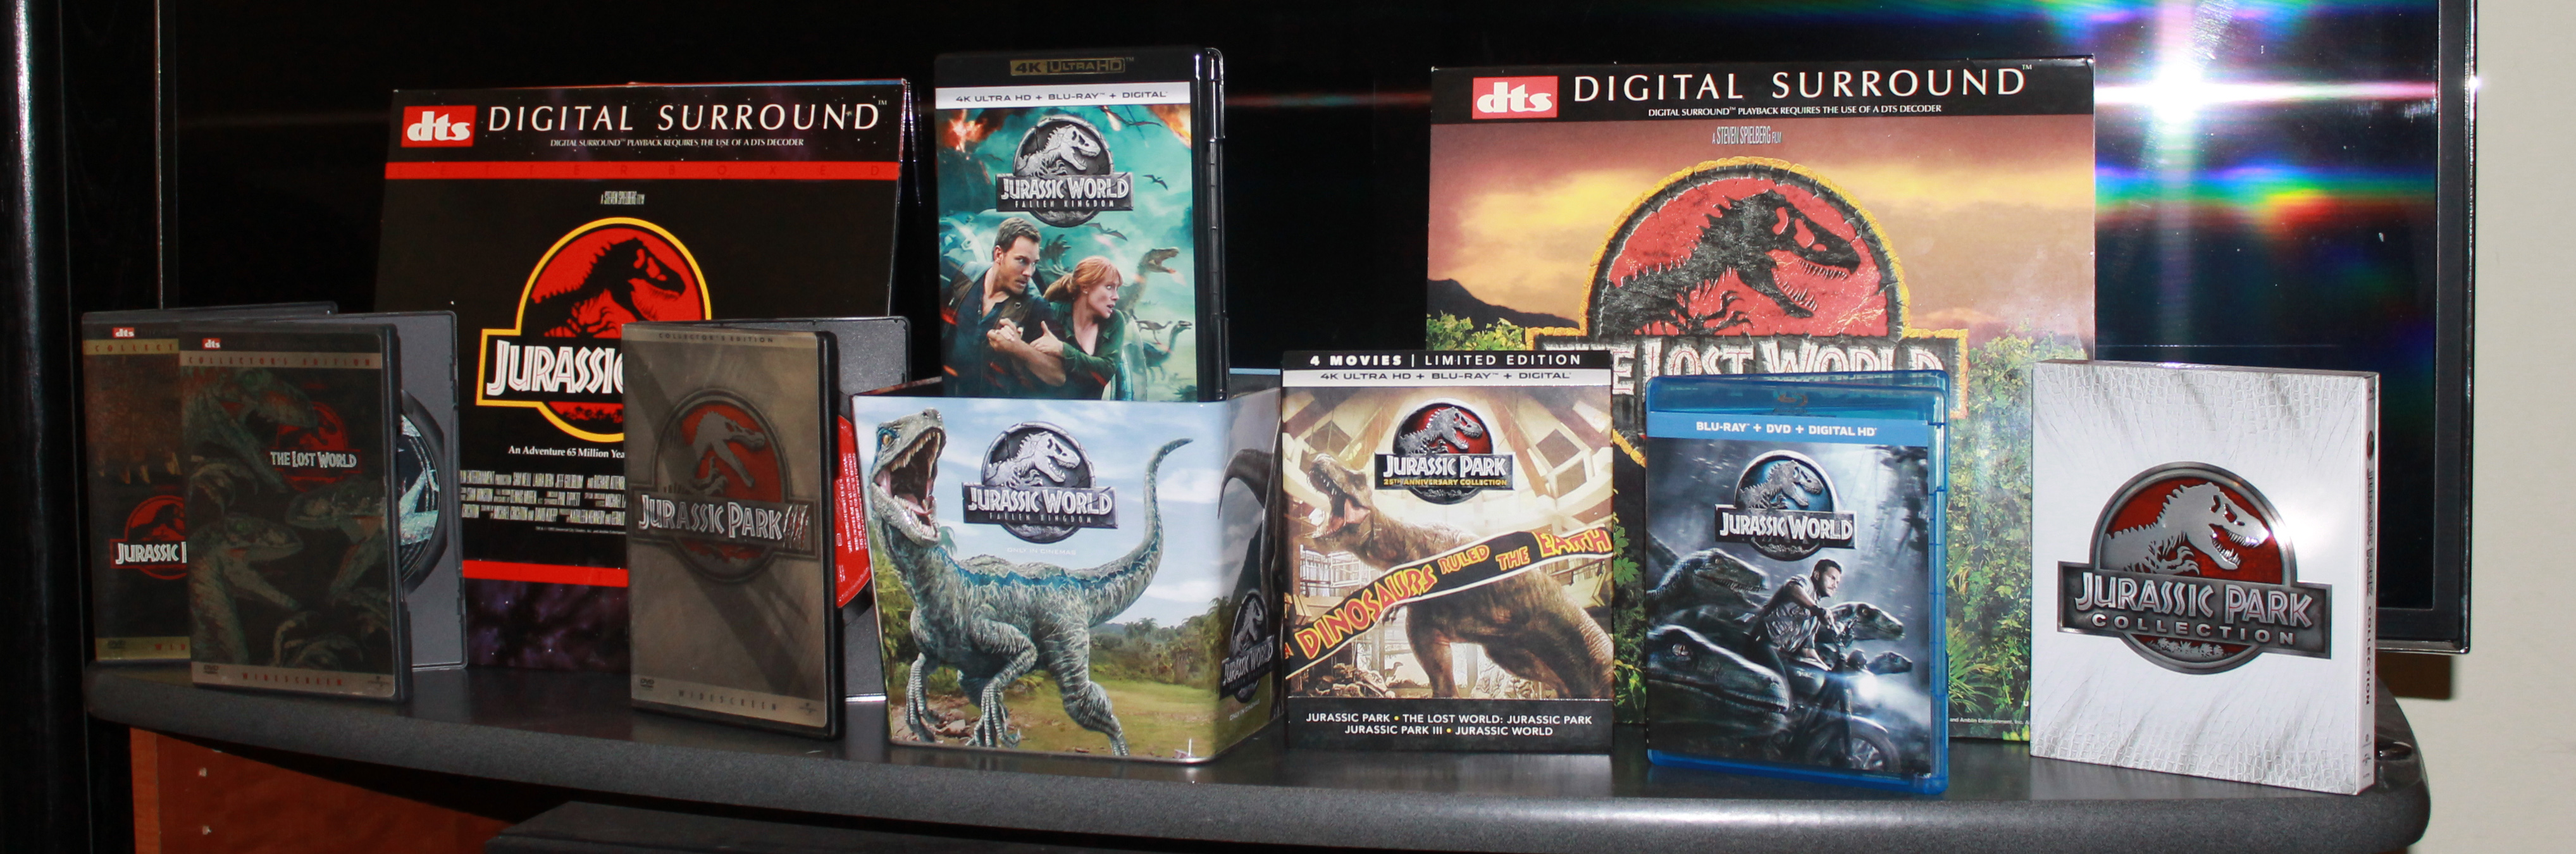 Jurassic Park Collection_a.JPG